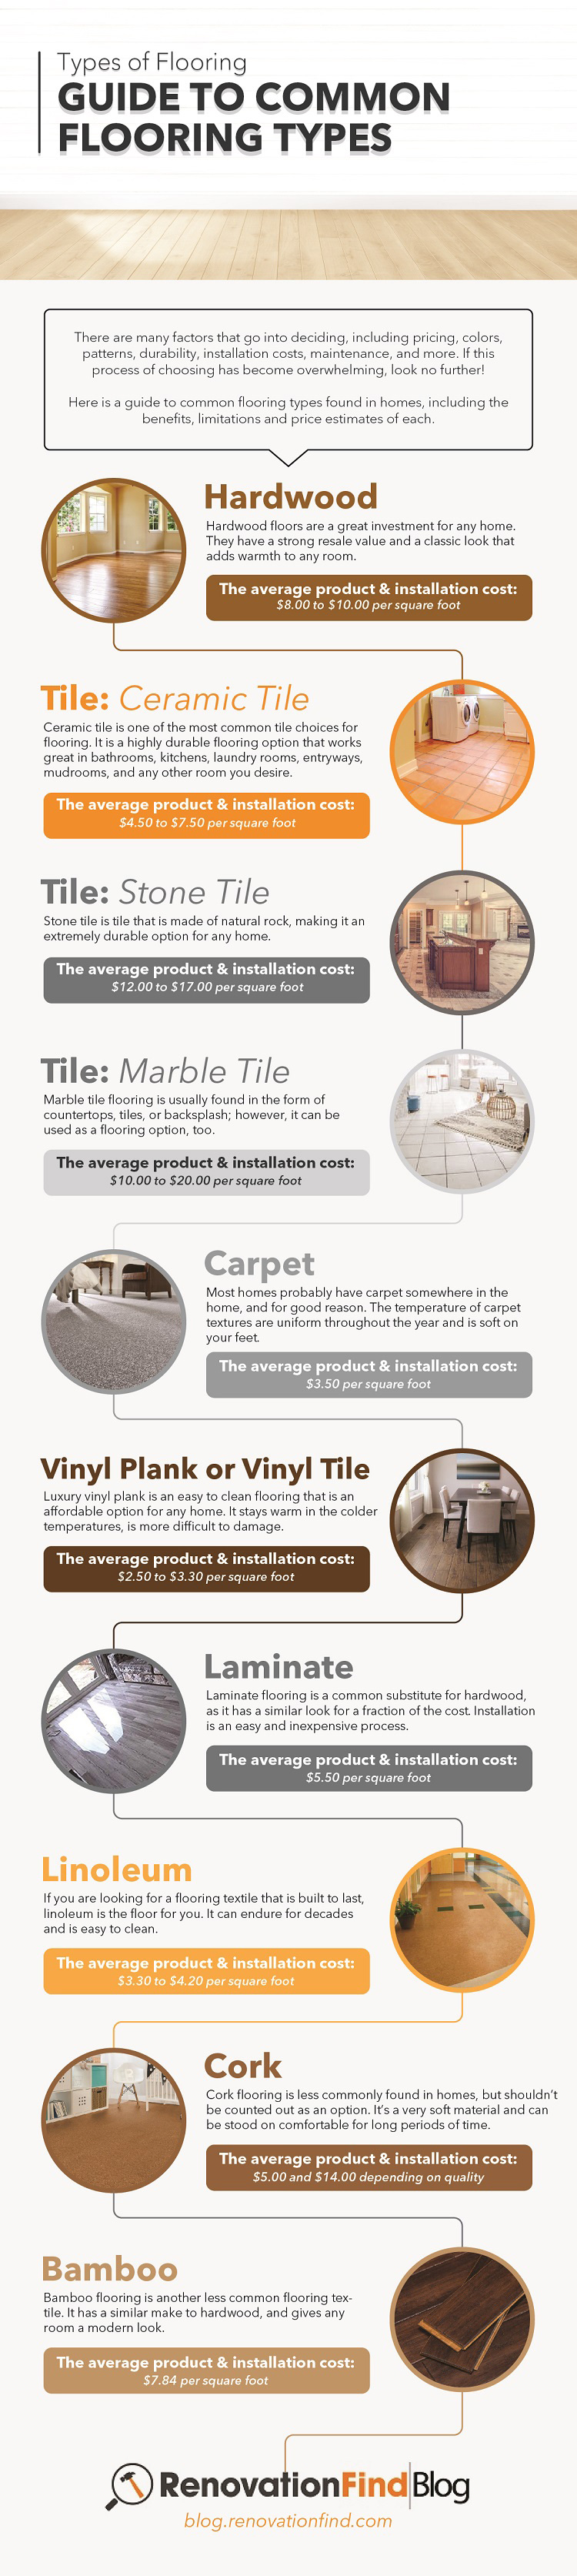 Guide to Common Flooring Types